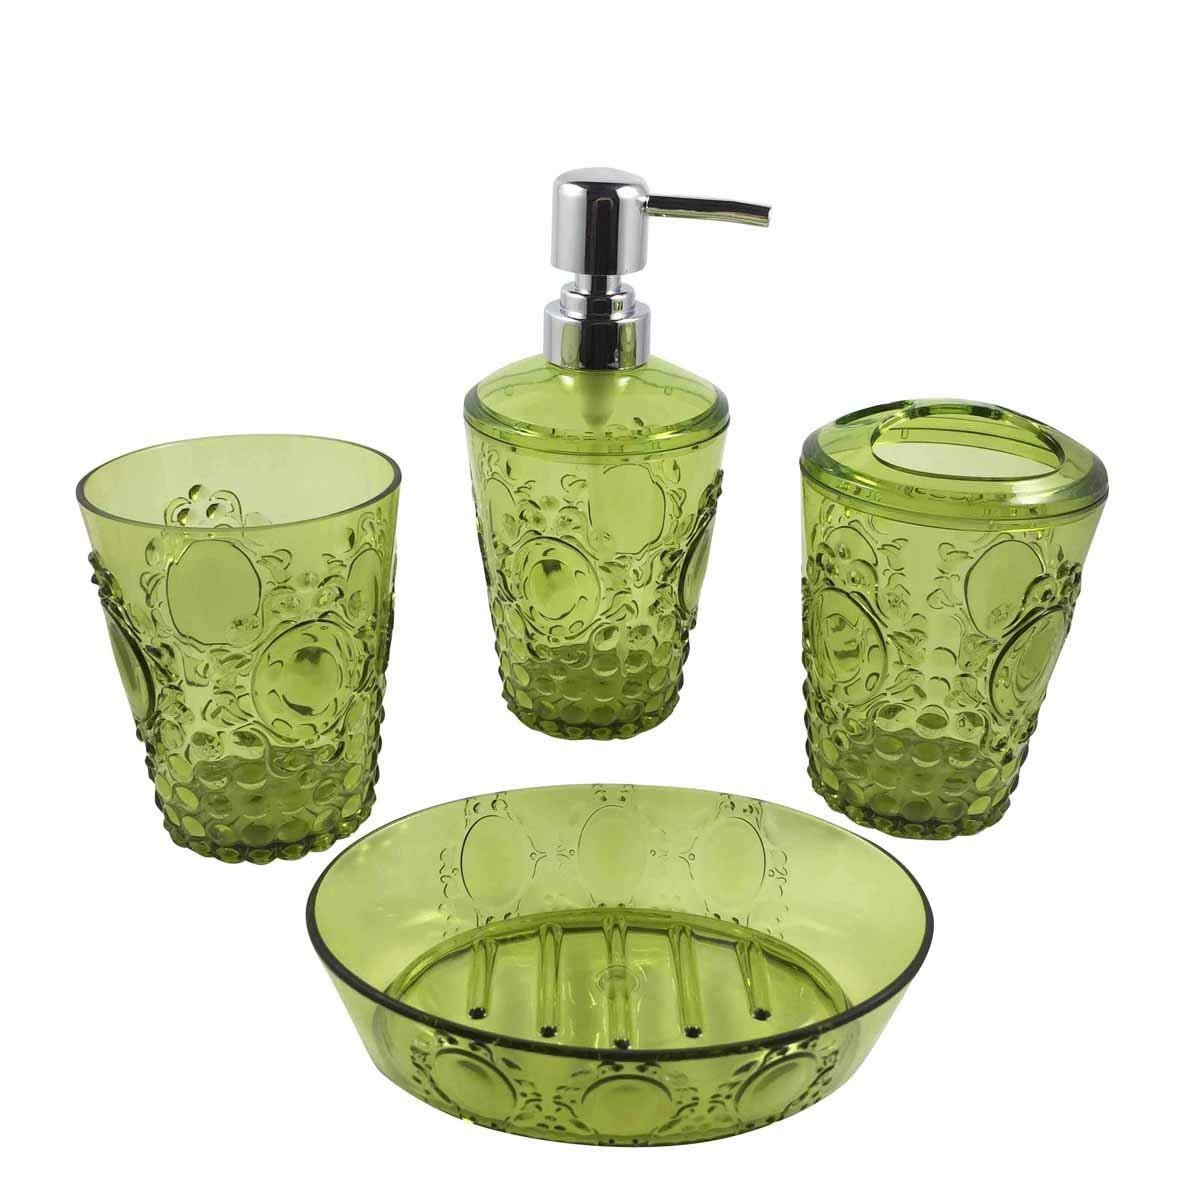 Green Safari Dispenser and Tumbler Set Bathroom Accessories